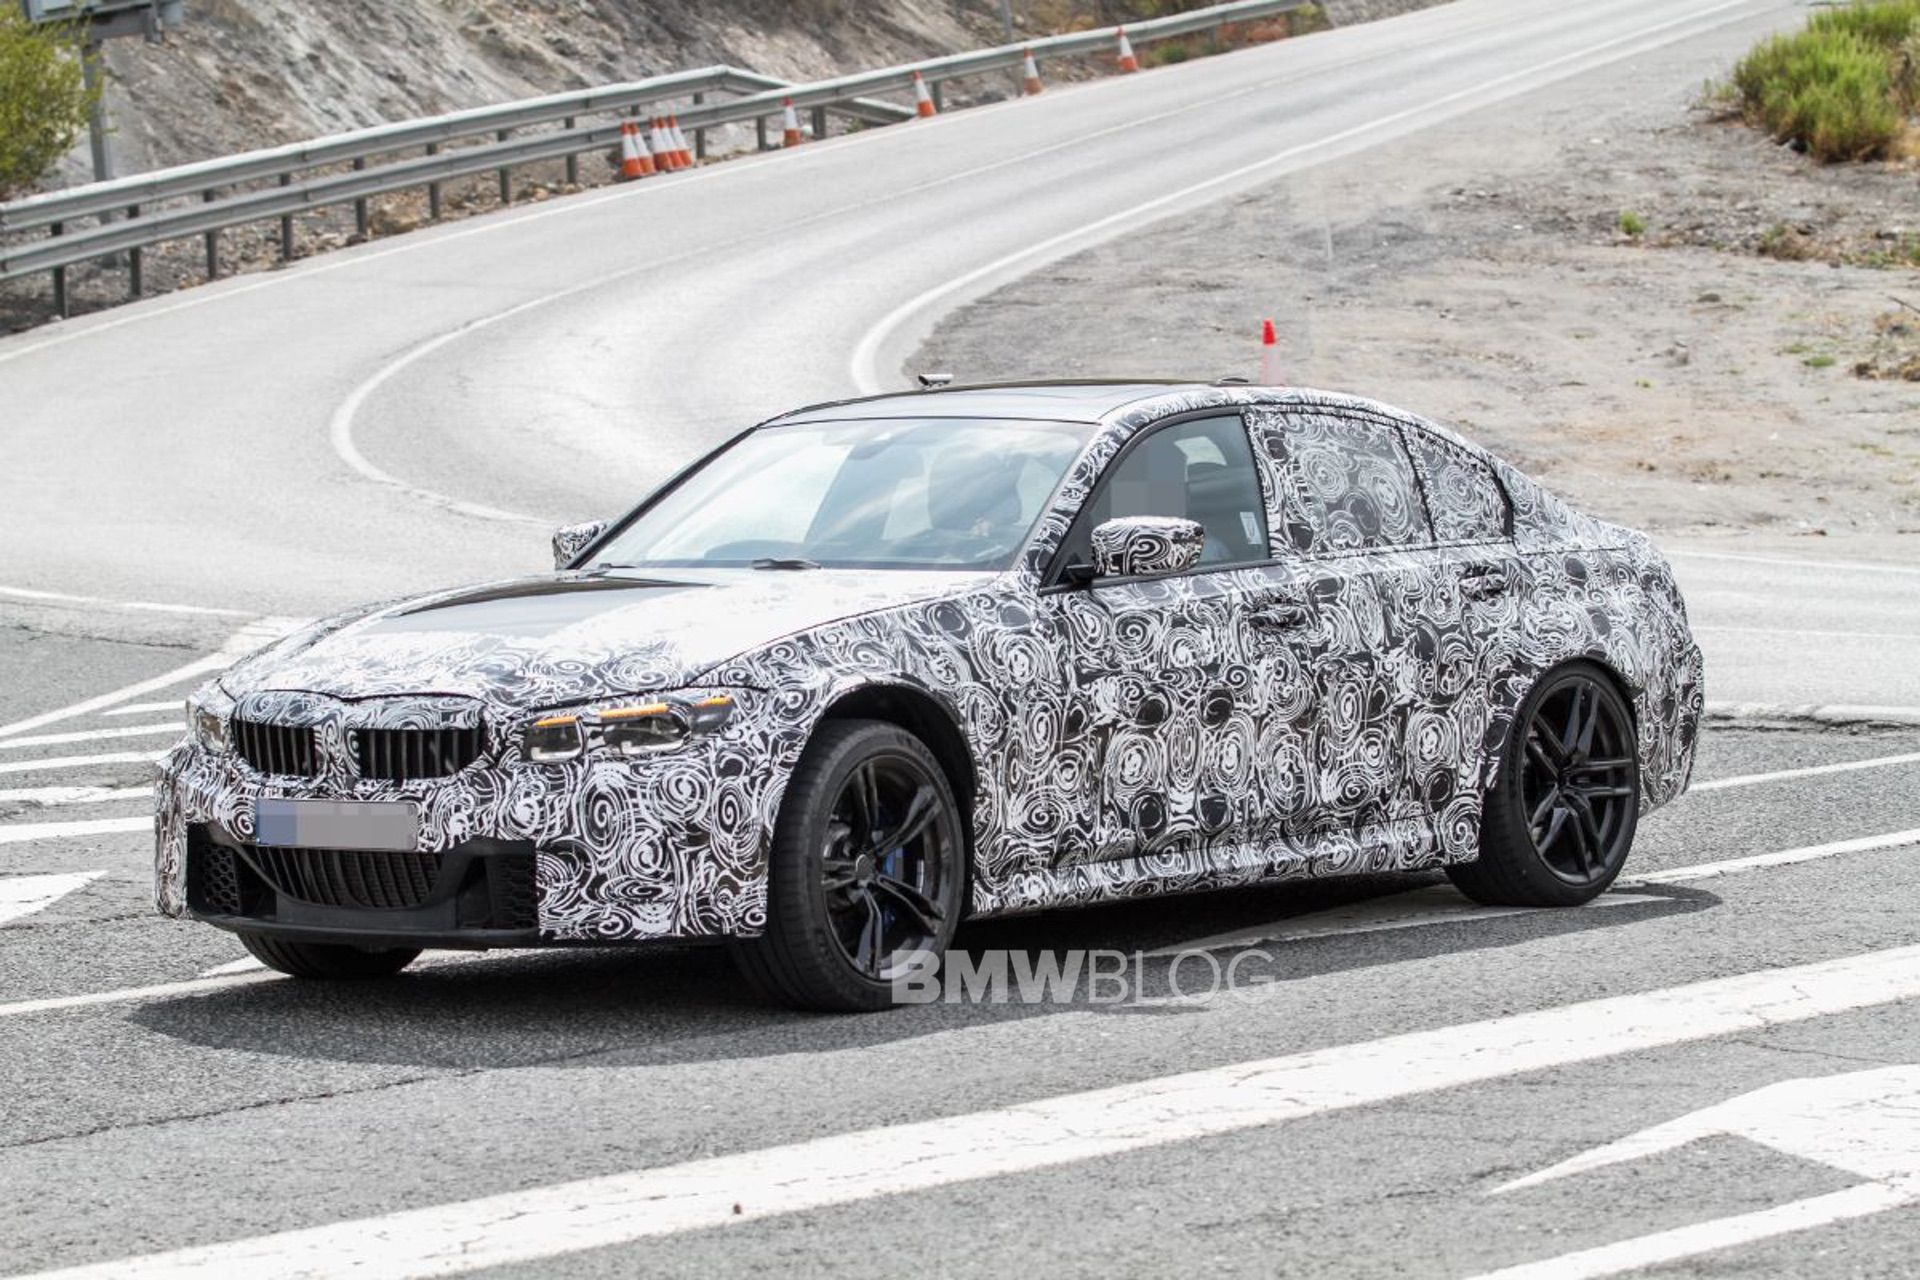 2020 Spy Shots BMW 3 Series Specs